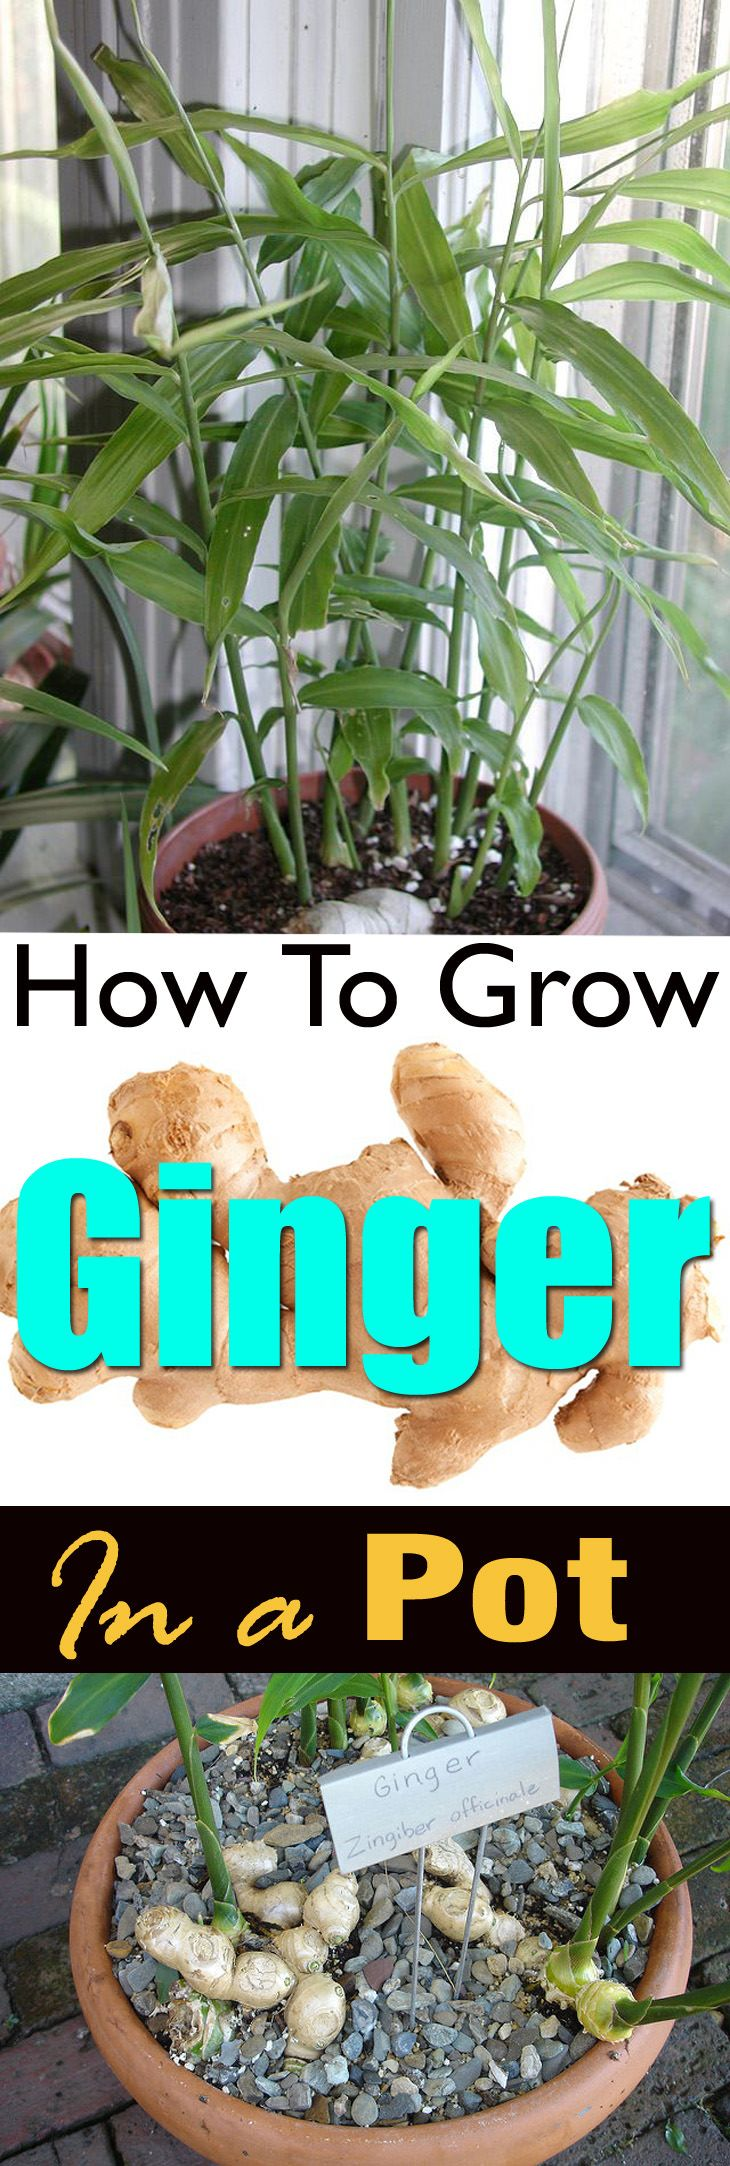 How To Grow Ginger In Pot #shadecontainergardenideas